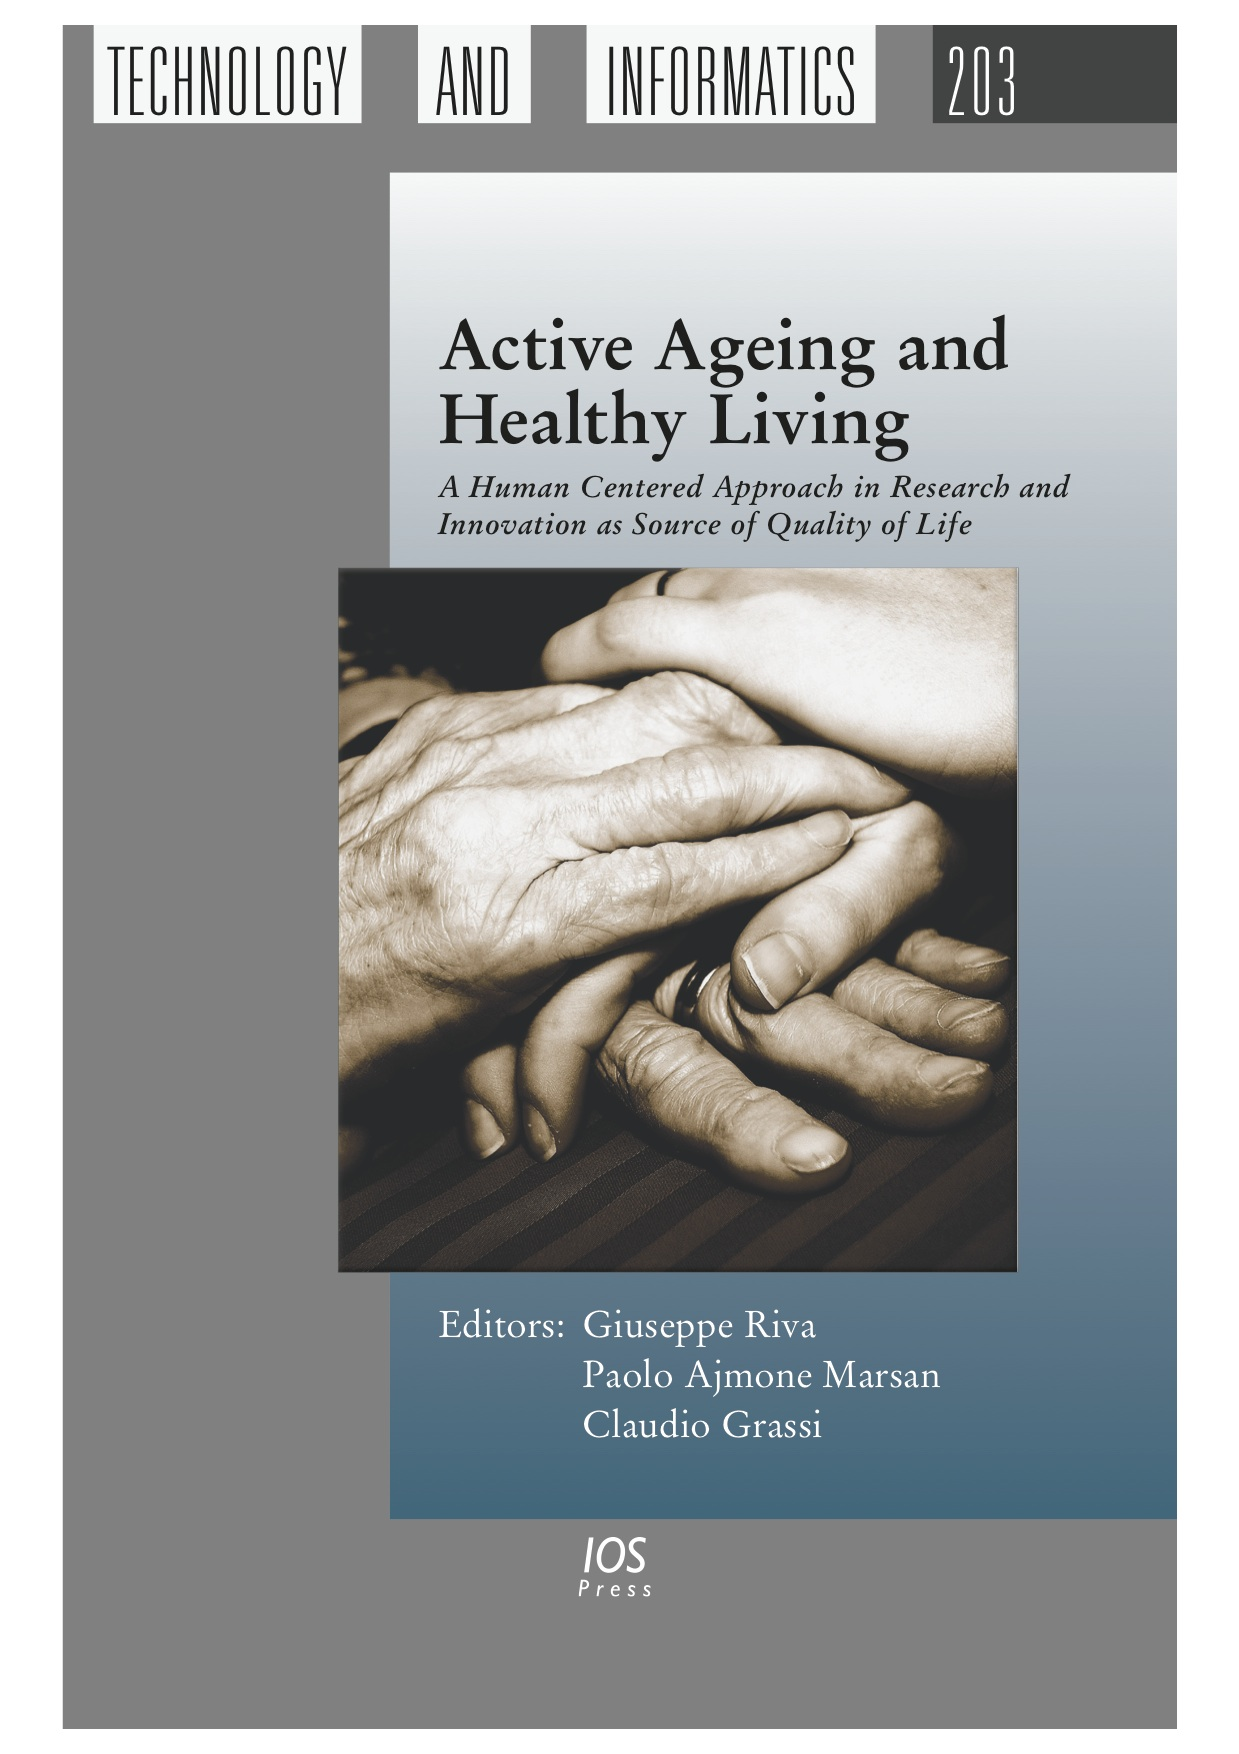 Active Ageing and Healthy Living